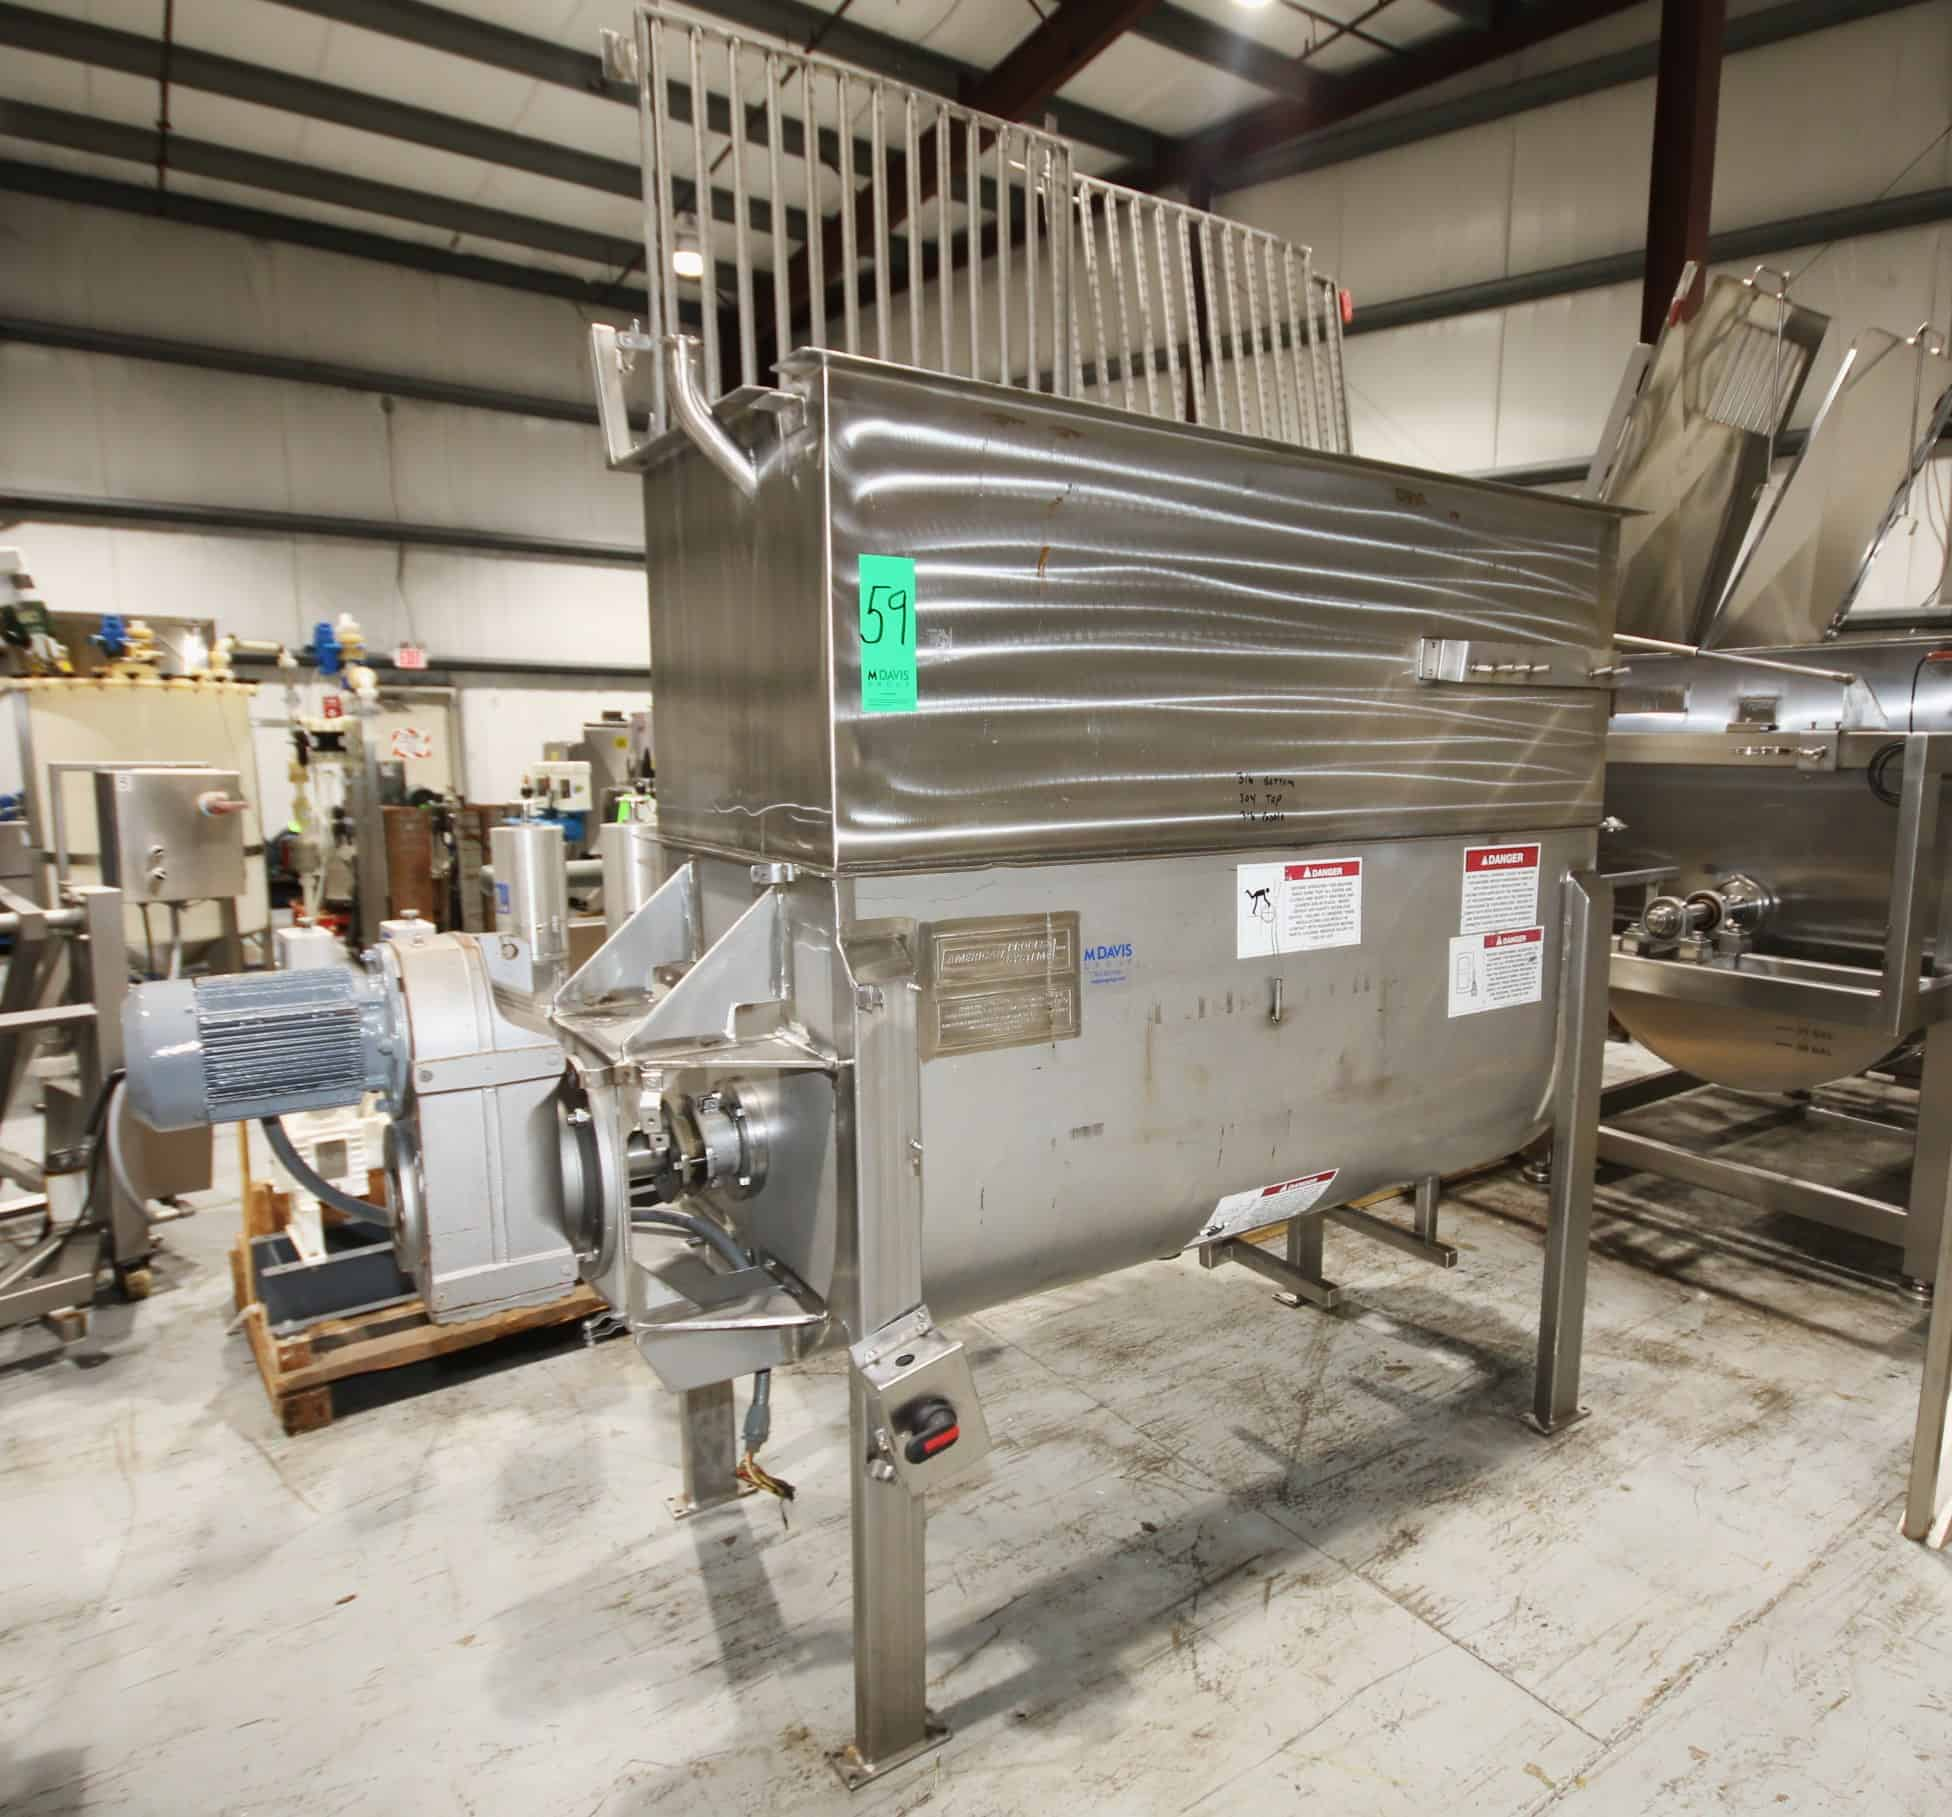 American Process Systems Approx. 72″ L x 60″ Deep x 30″ W All S/S Paddle Blender, Model SPB-30, S/N 5030 with 316 S/S Bottom, 316 S/S Paddle and Magnetic Safety Guard (Located in Pittsburgh)